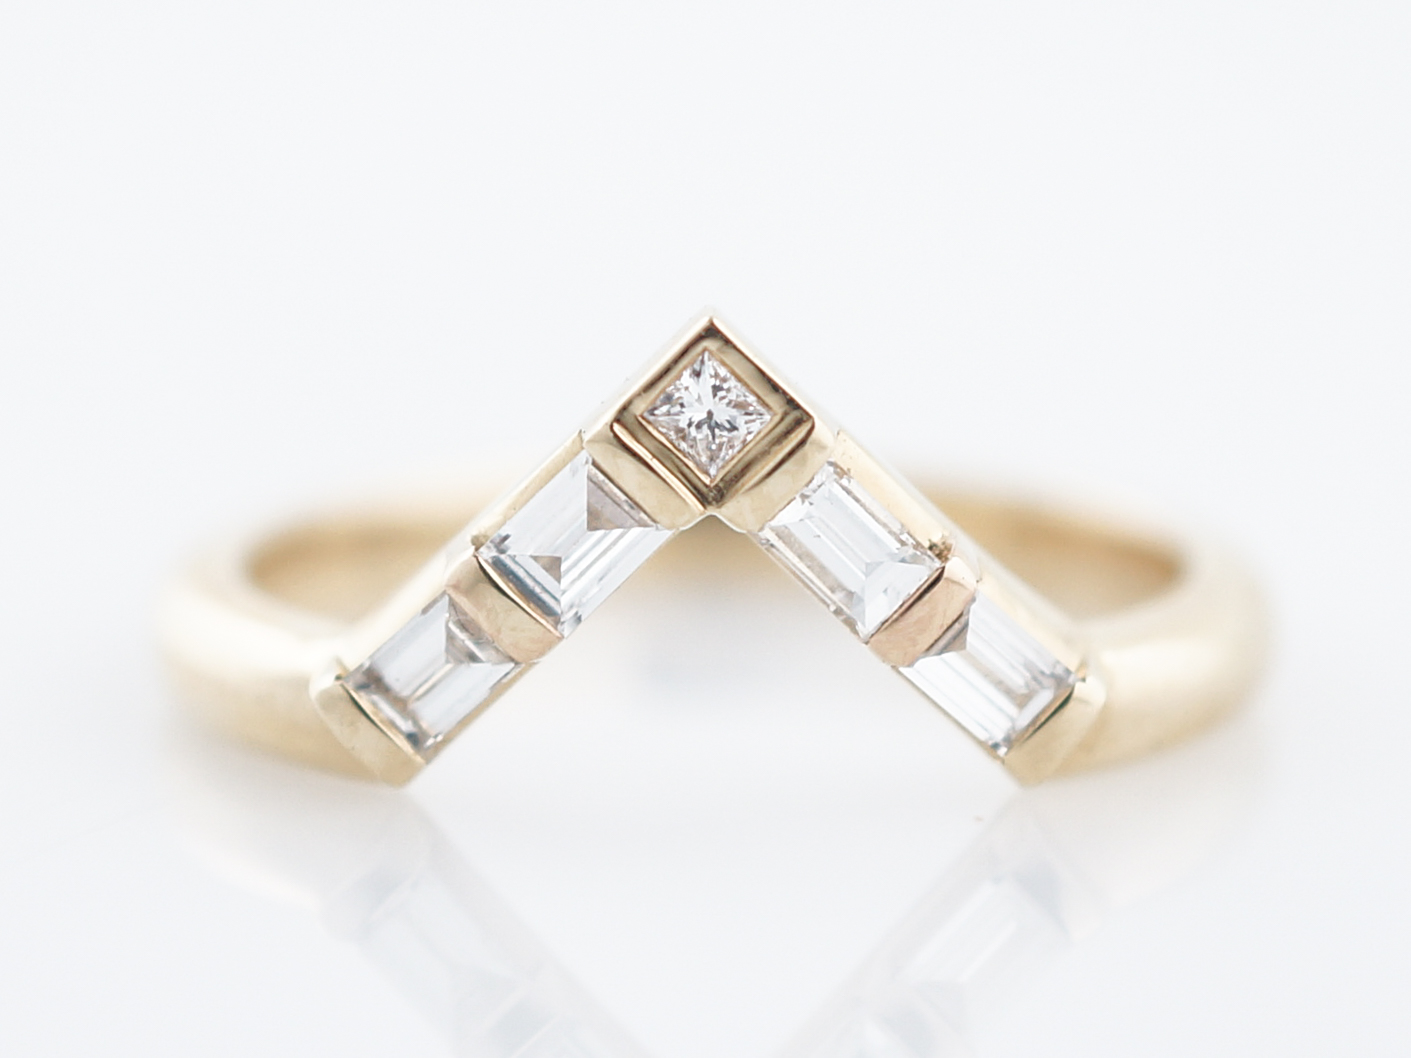 Wedding band modern 39 baguette square cut diamonds in 14k yellow home wedding bands junglespirit Choice Image